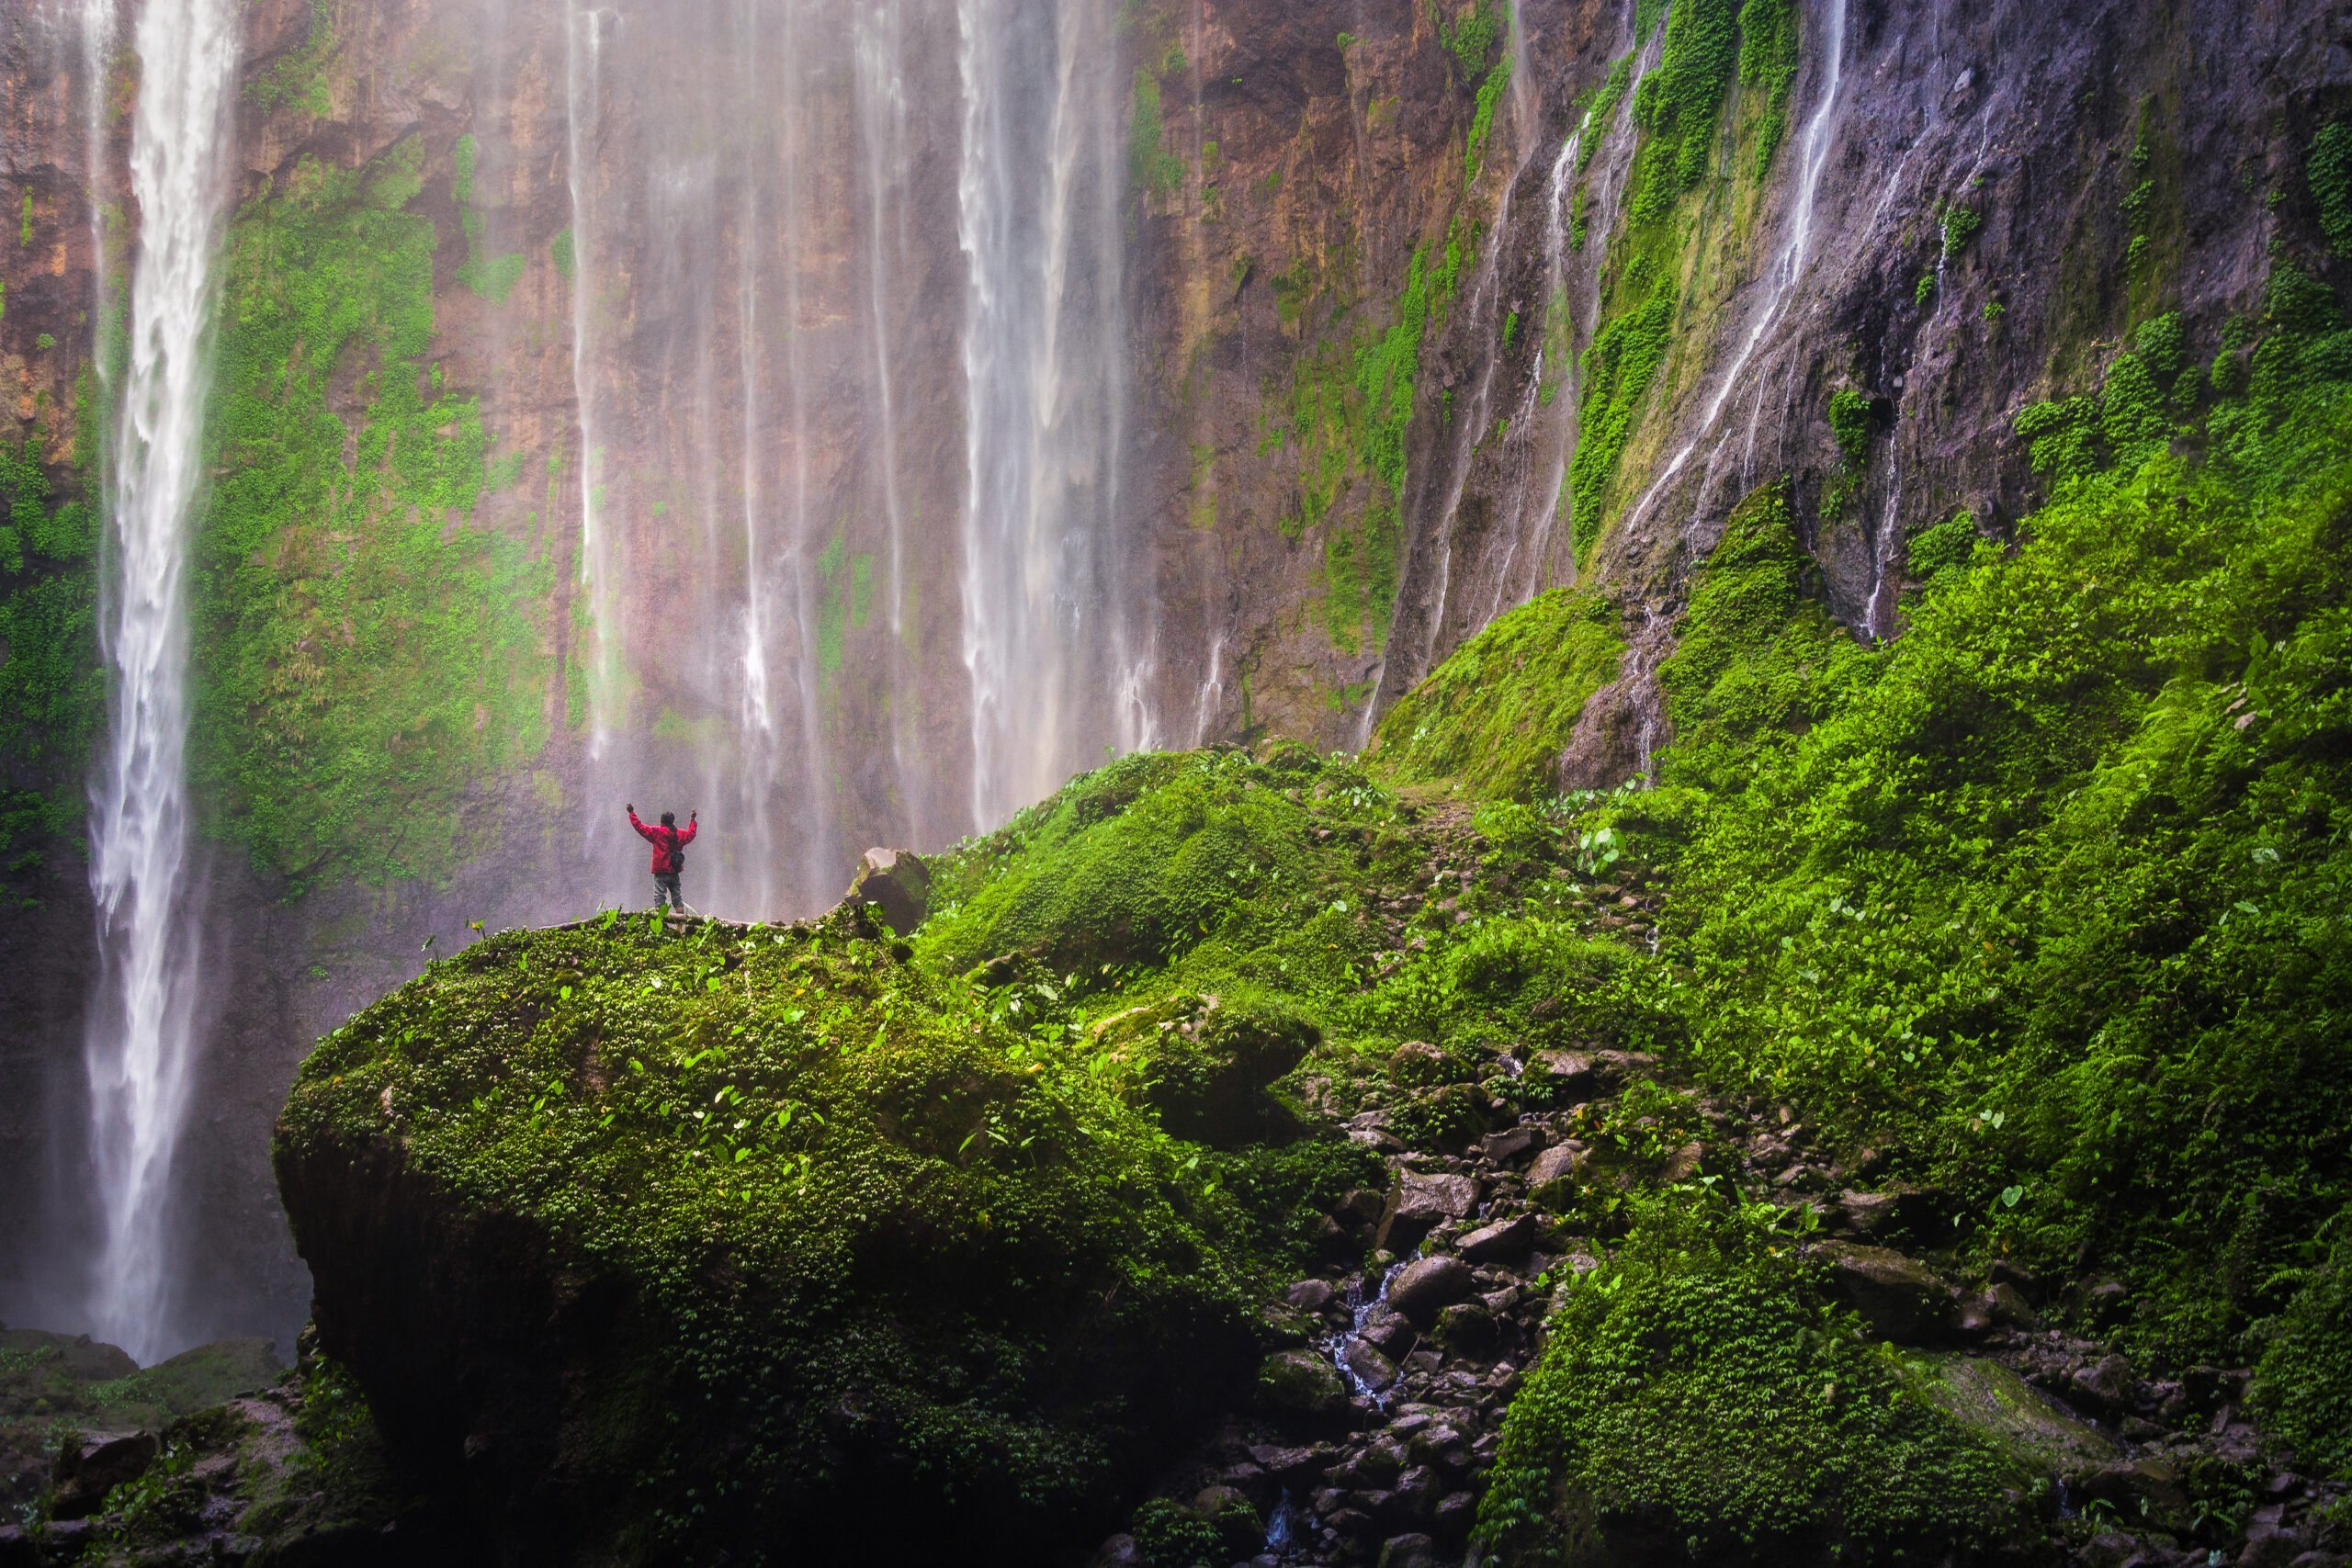 Visit Tumpak Sewu Waterfall In Our Wonders Of East Java 4 Day V.i.p Tour